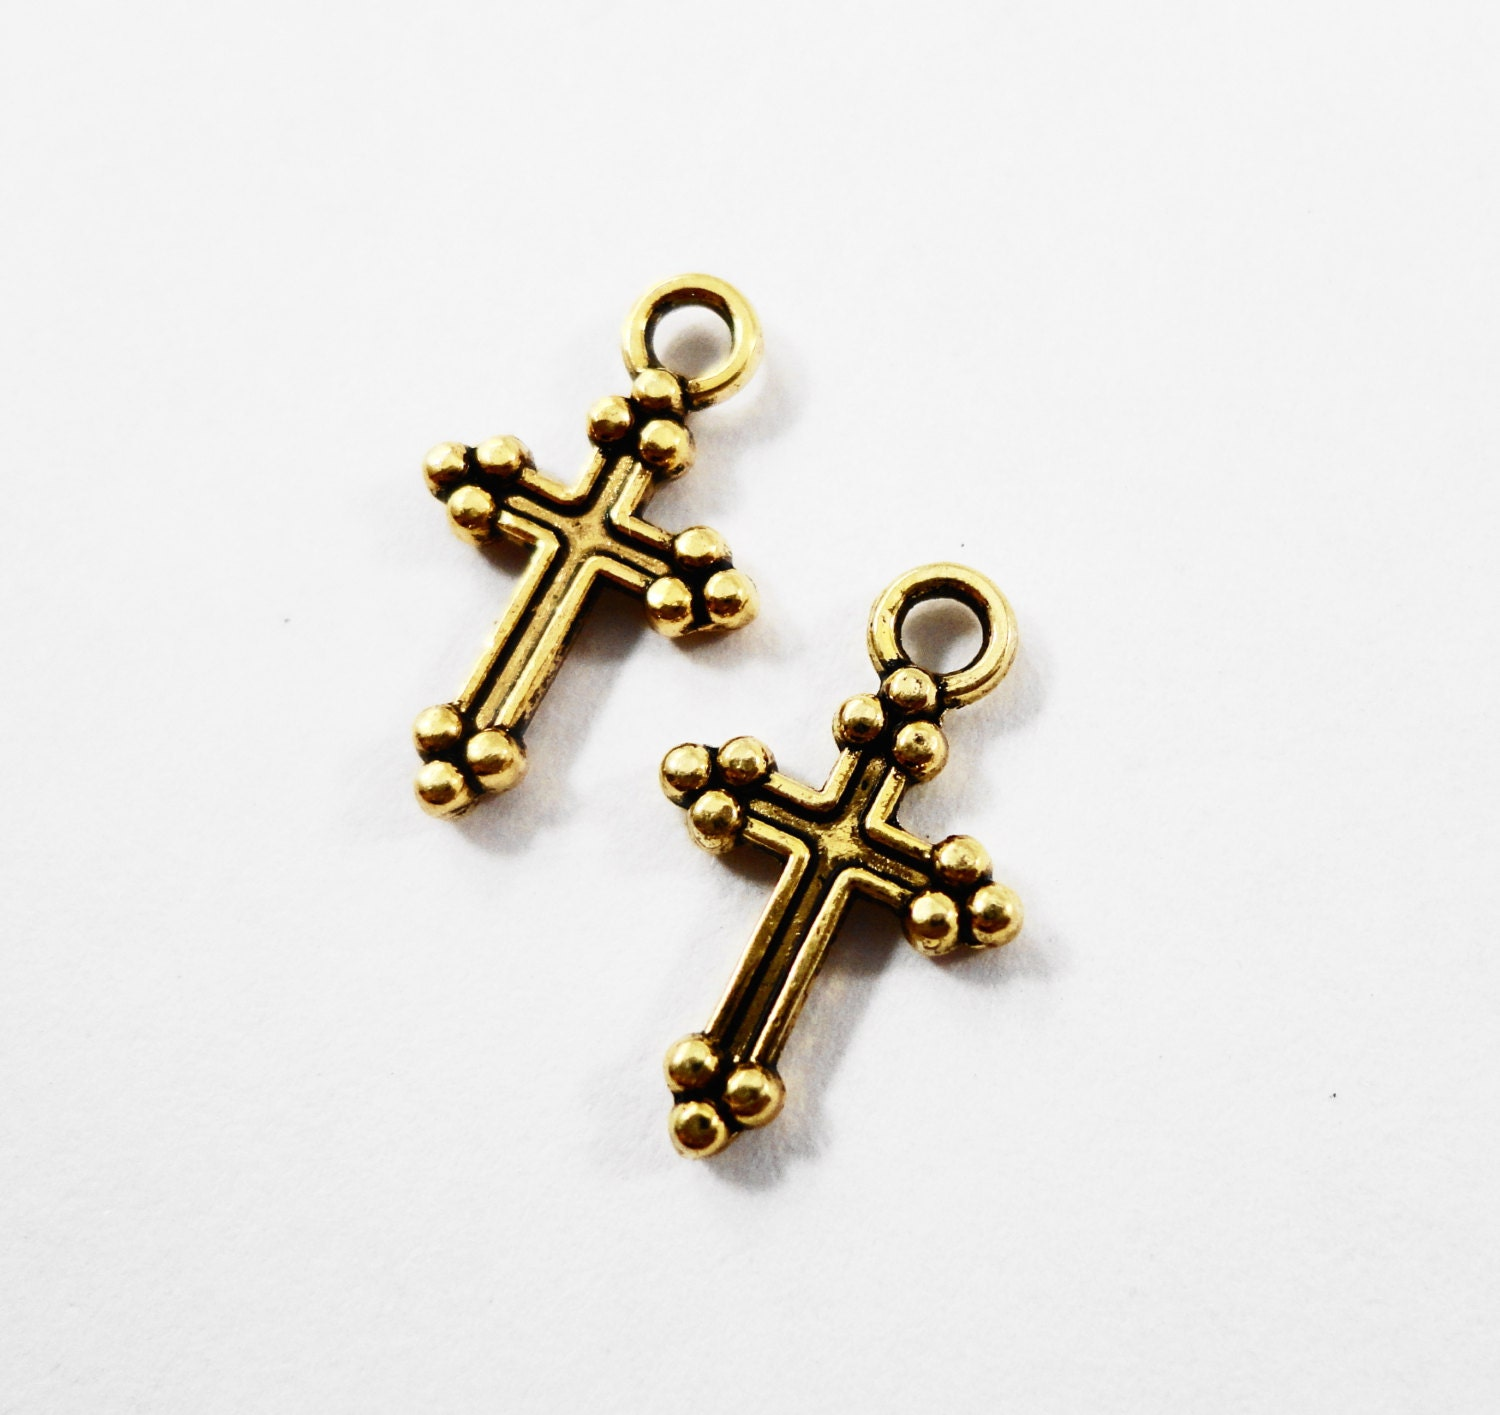 Gold cross charms 14x8mm antique gold cross pendants catholic gold cross charms 14x8mm antique gold cross pendants catholic charms religious charms gold metal charms for jewelry craft supplies 15pcs aloadofball Image collections